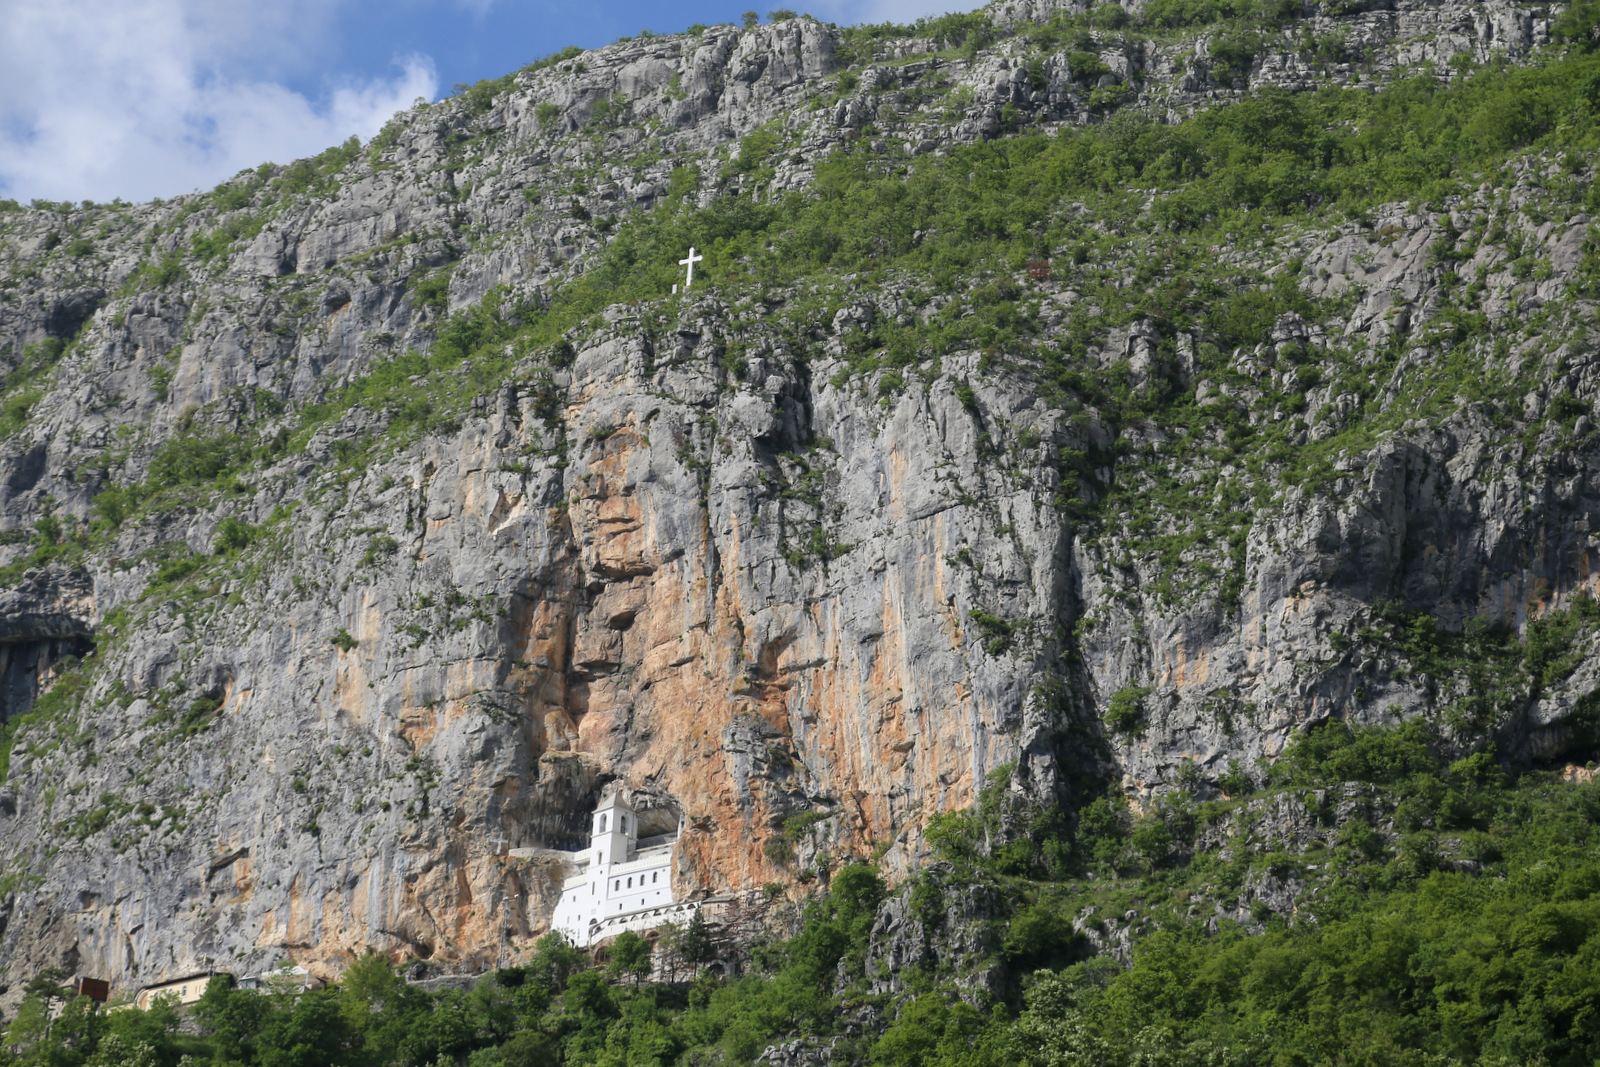 Approaching Ostrog monastery